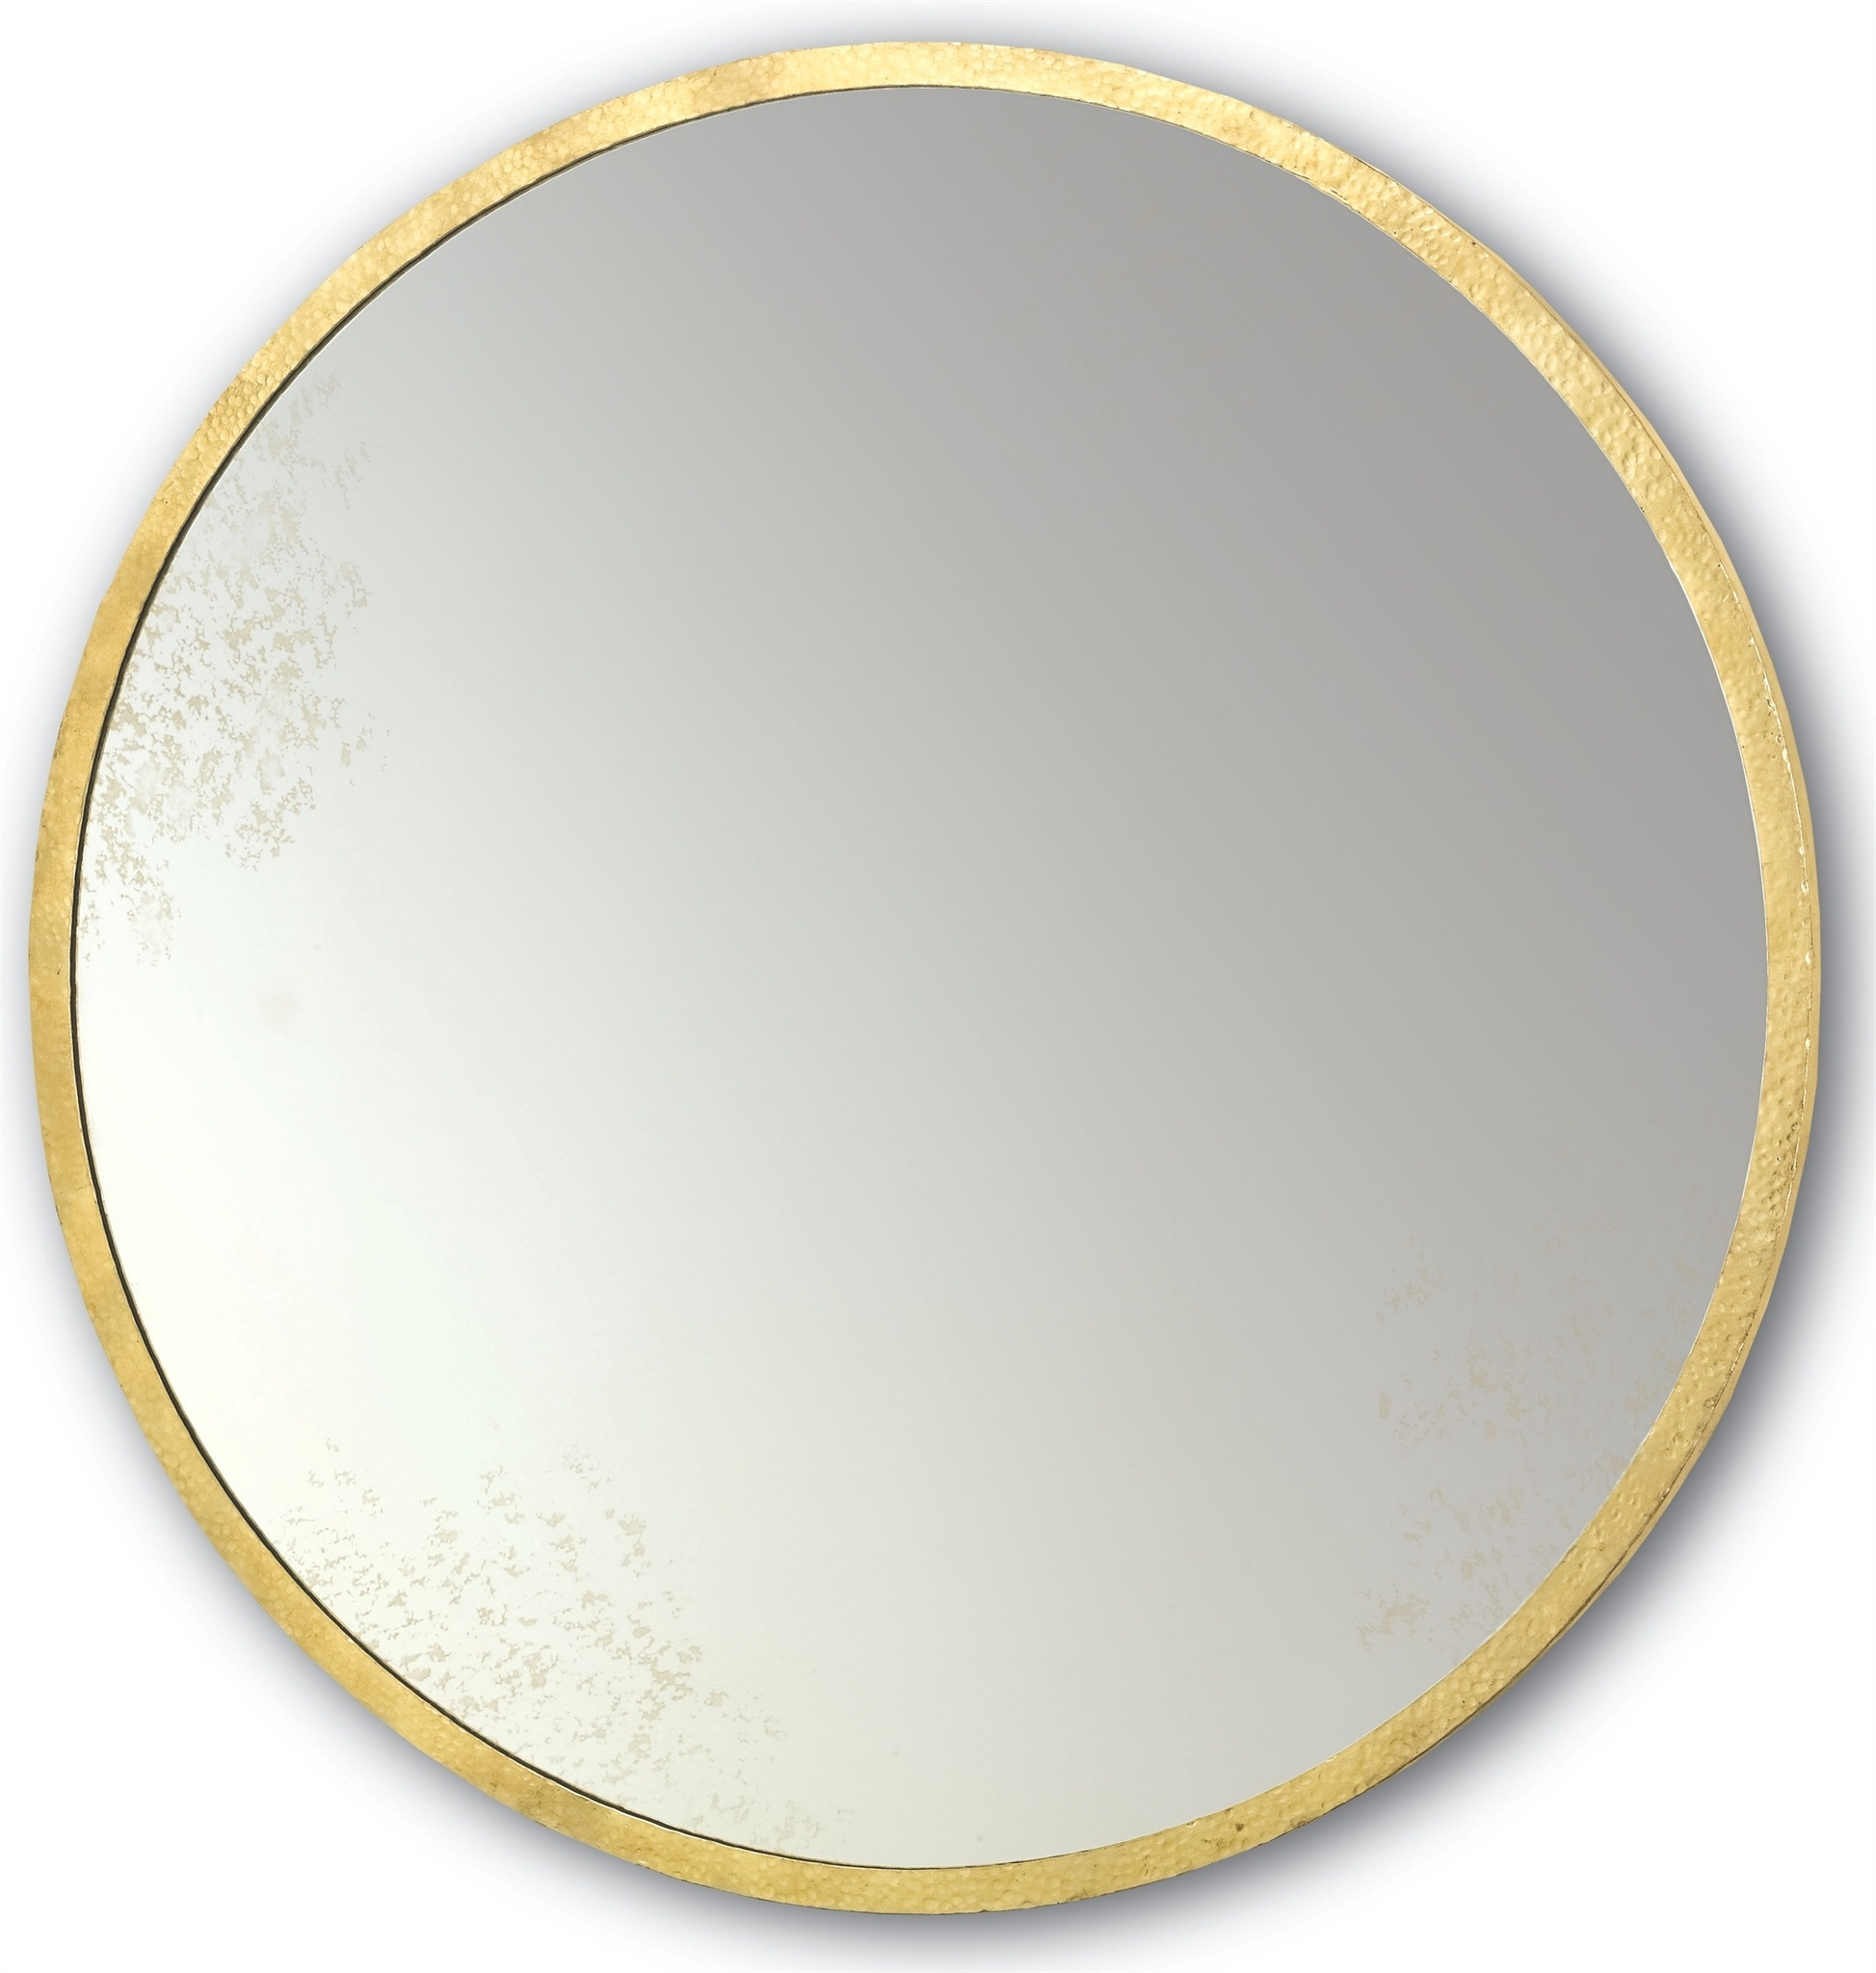 Wall Mirrors Vanity Mirrors Decorative Mirrors Currey And Company For Brass Mirrors For Sale (Image 15 of 15)